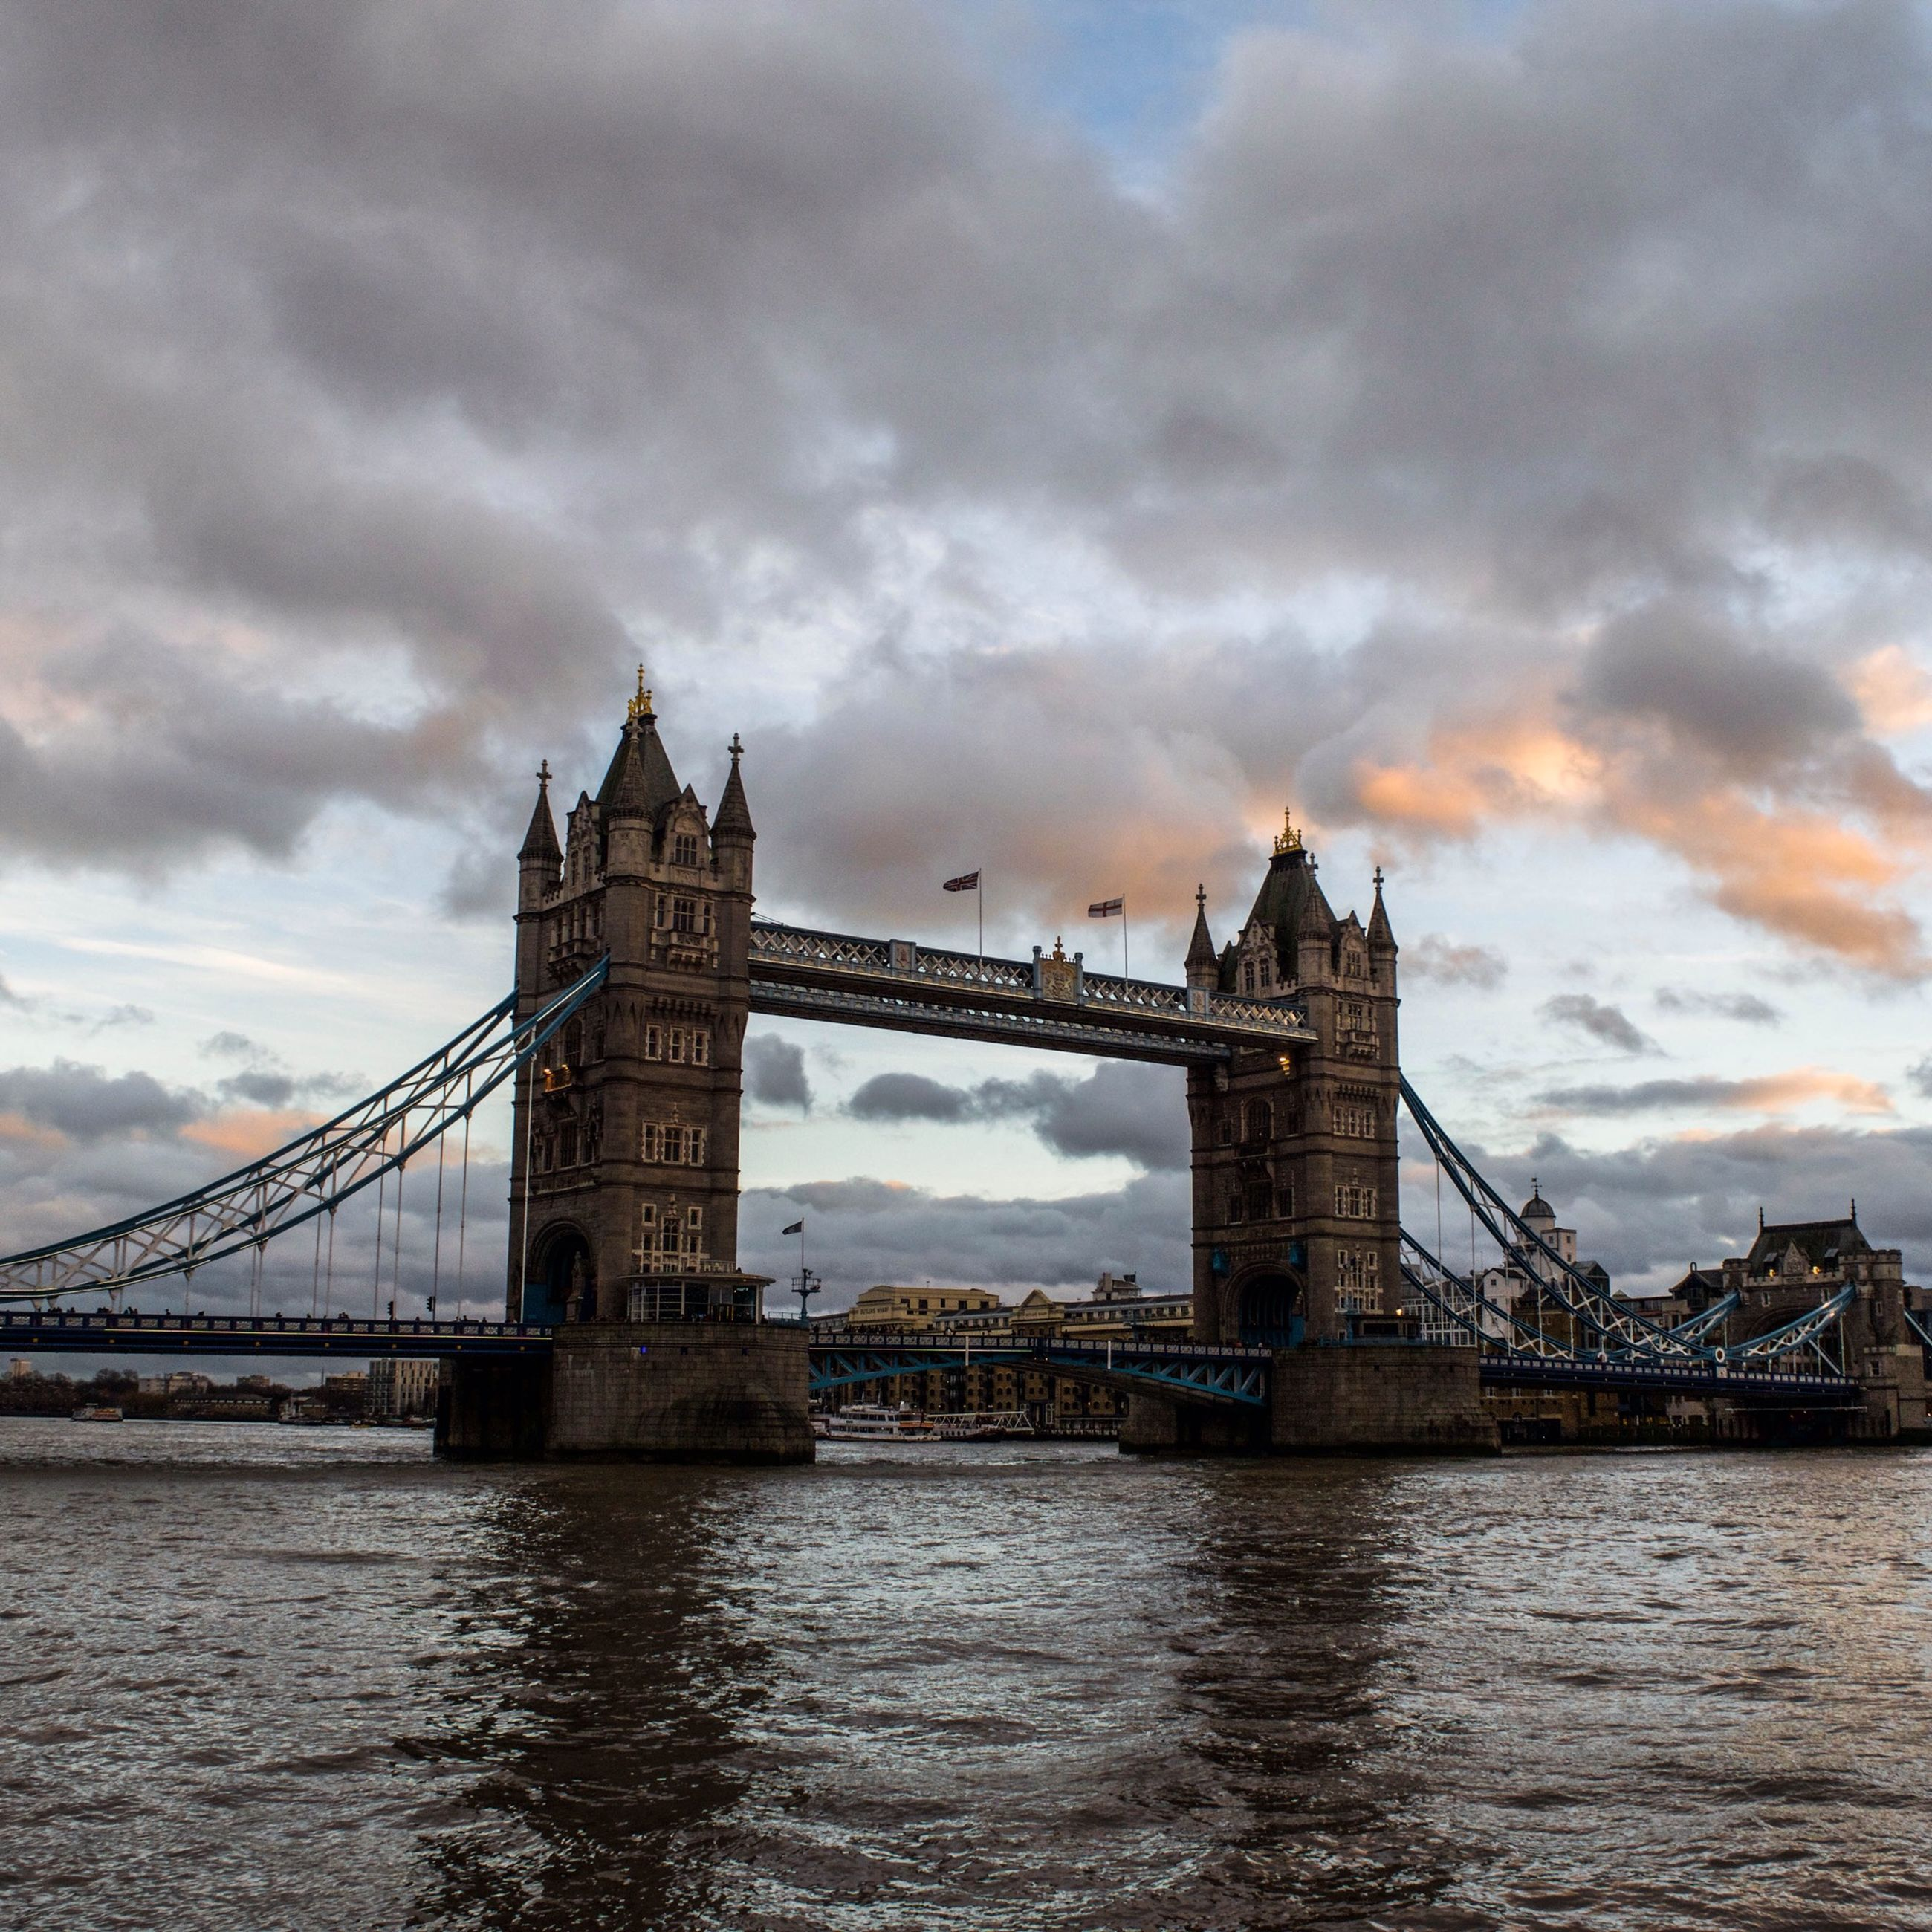 architecture, built structure, connection, bridge - man made structure, sky, water, waterfront, cloud - sky, river, engineering, famous place, international landmark, travel destinations, cloudy, transportation, thames river, suspension bridge, bridge, cloud, travel